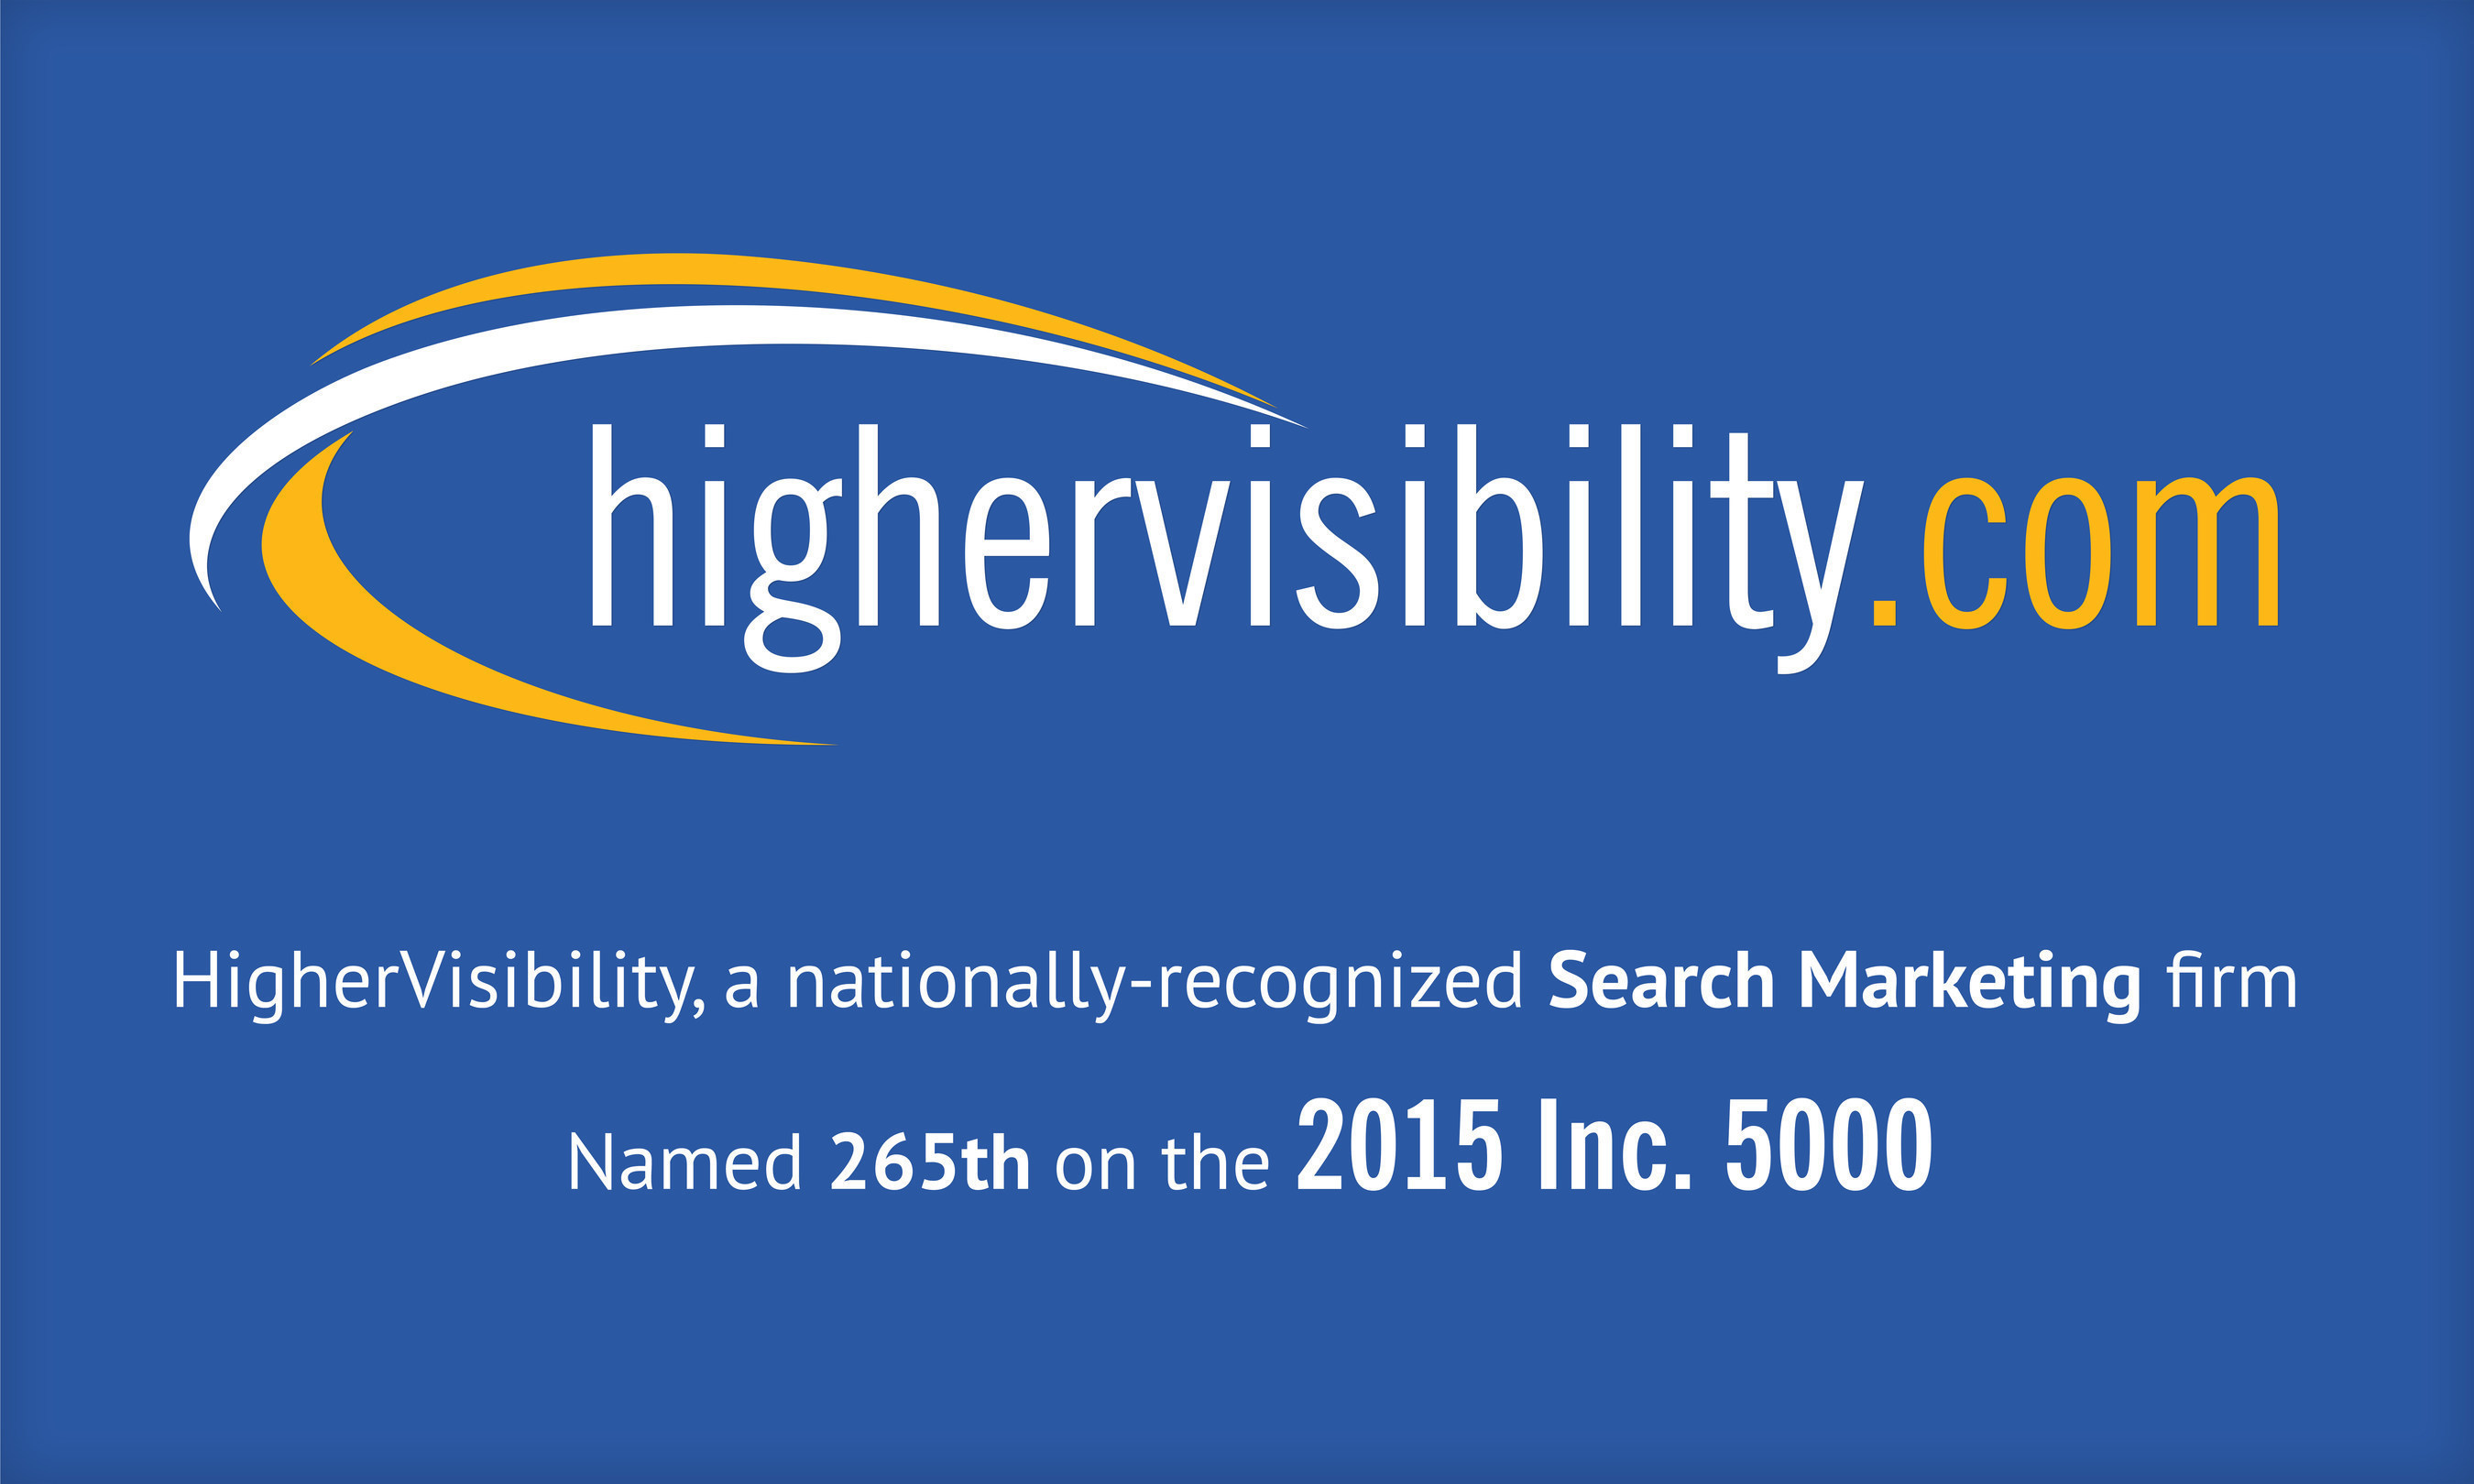 HigherVisibility Ranked 265th on the 2015 Inc. 500 with Three-Year Sales Growth of 1,710%